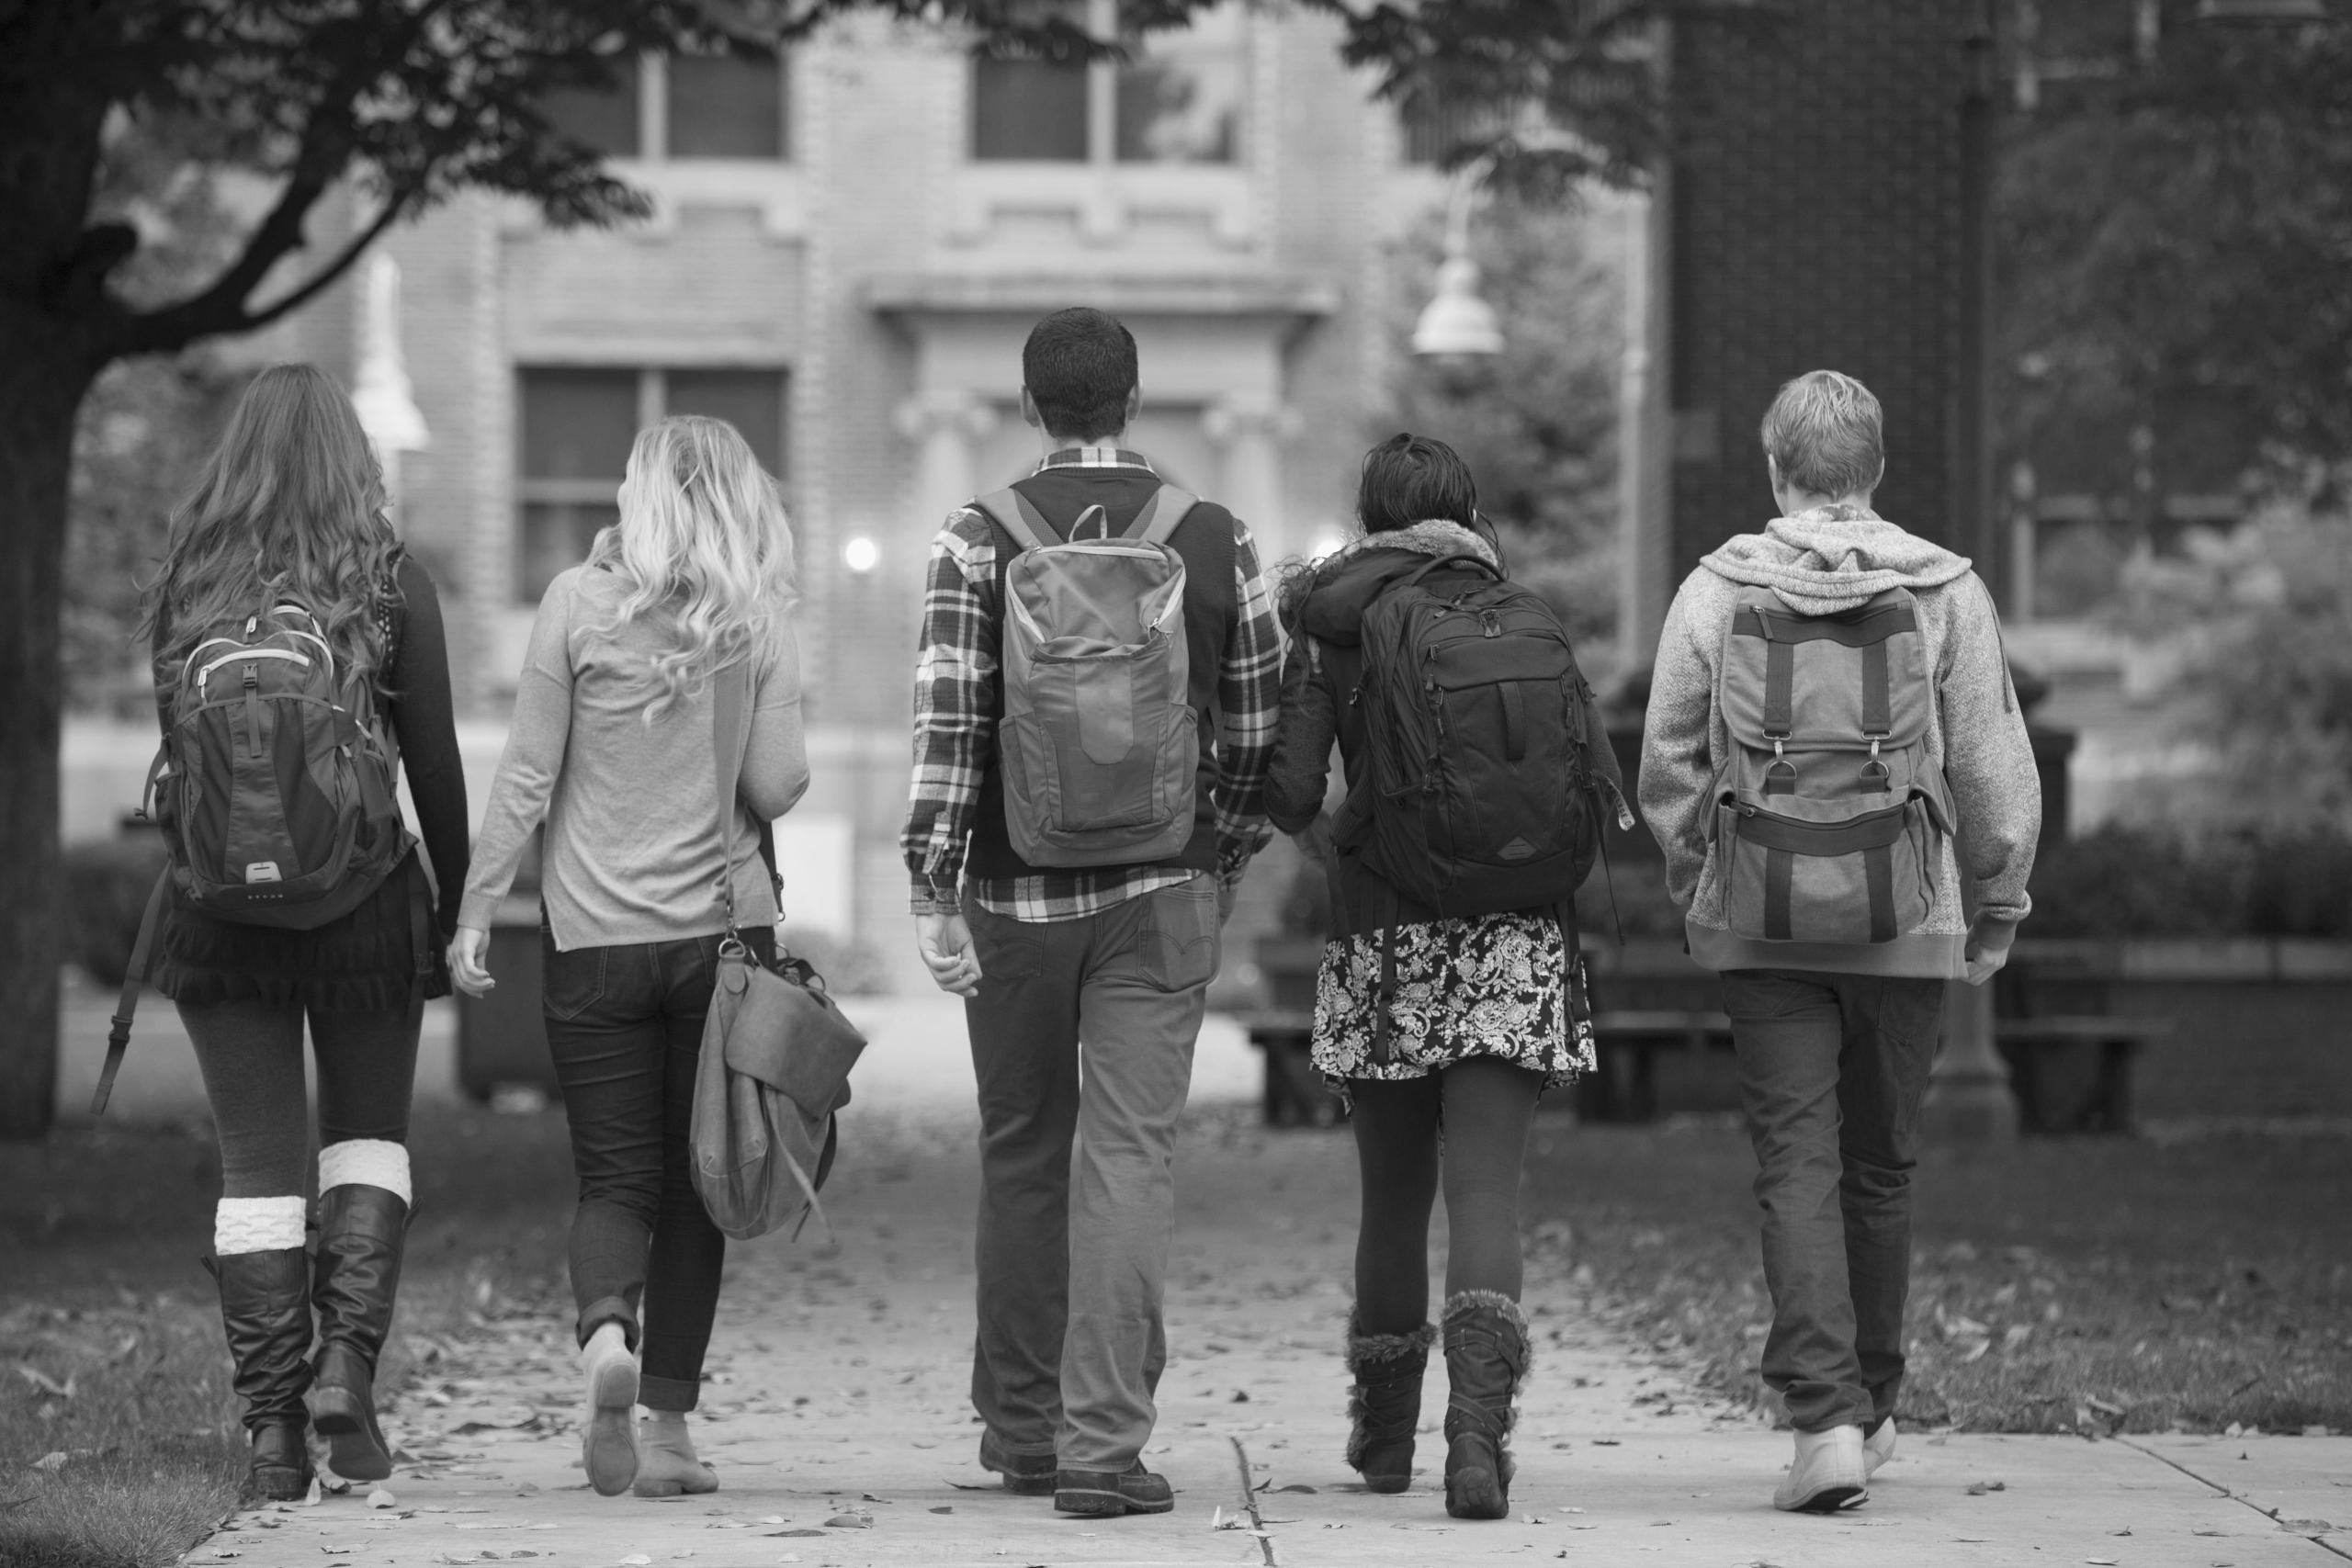 A group of five students with backpacks walking away